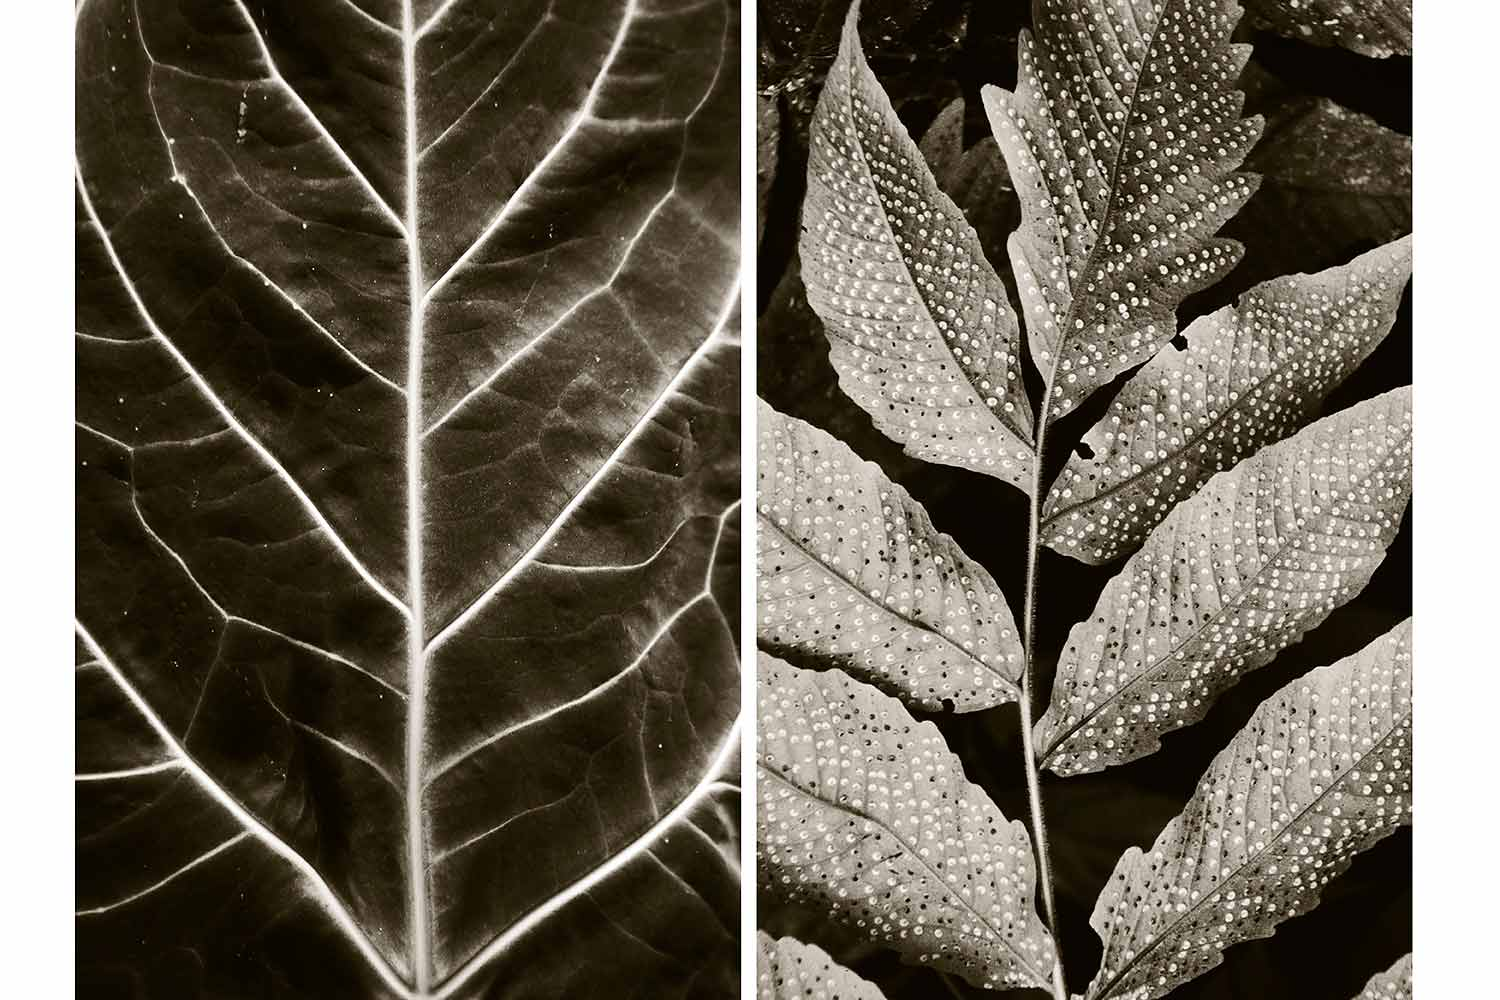 Veins and spores